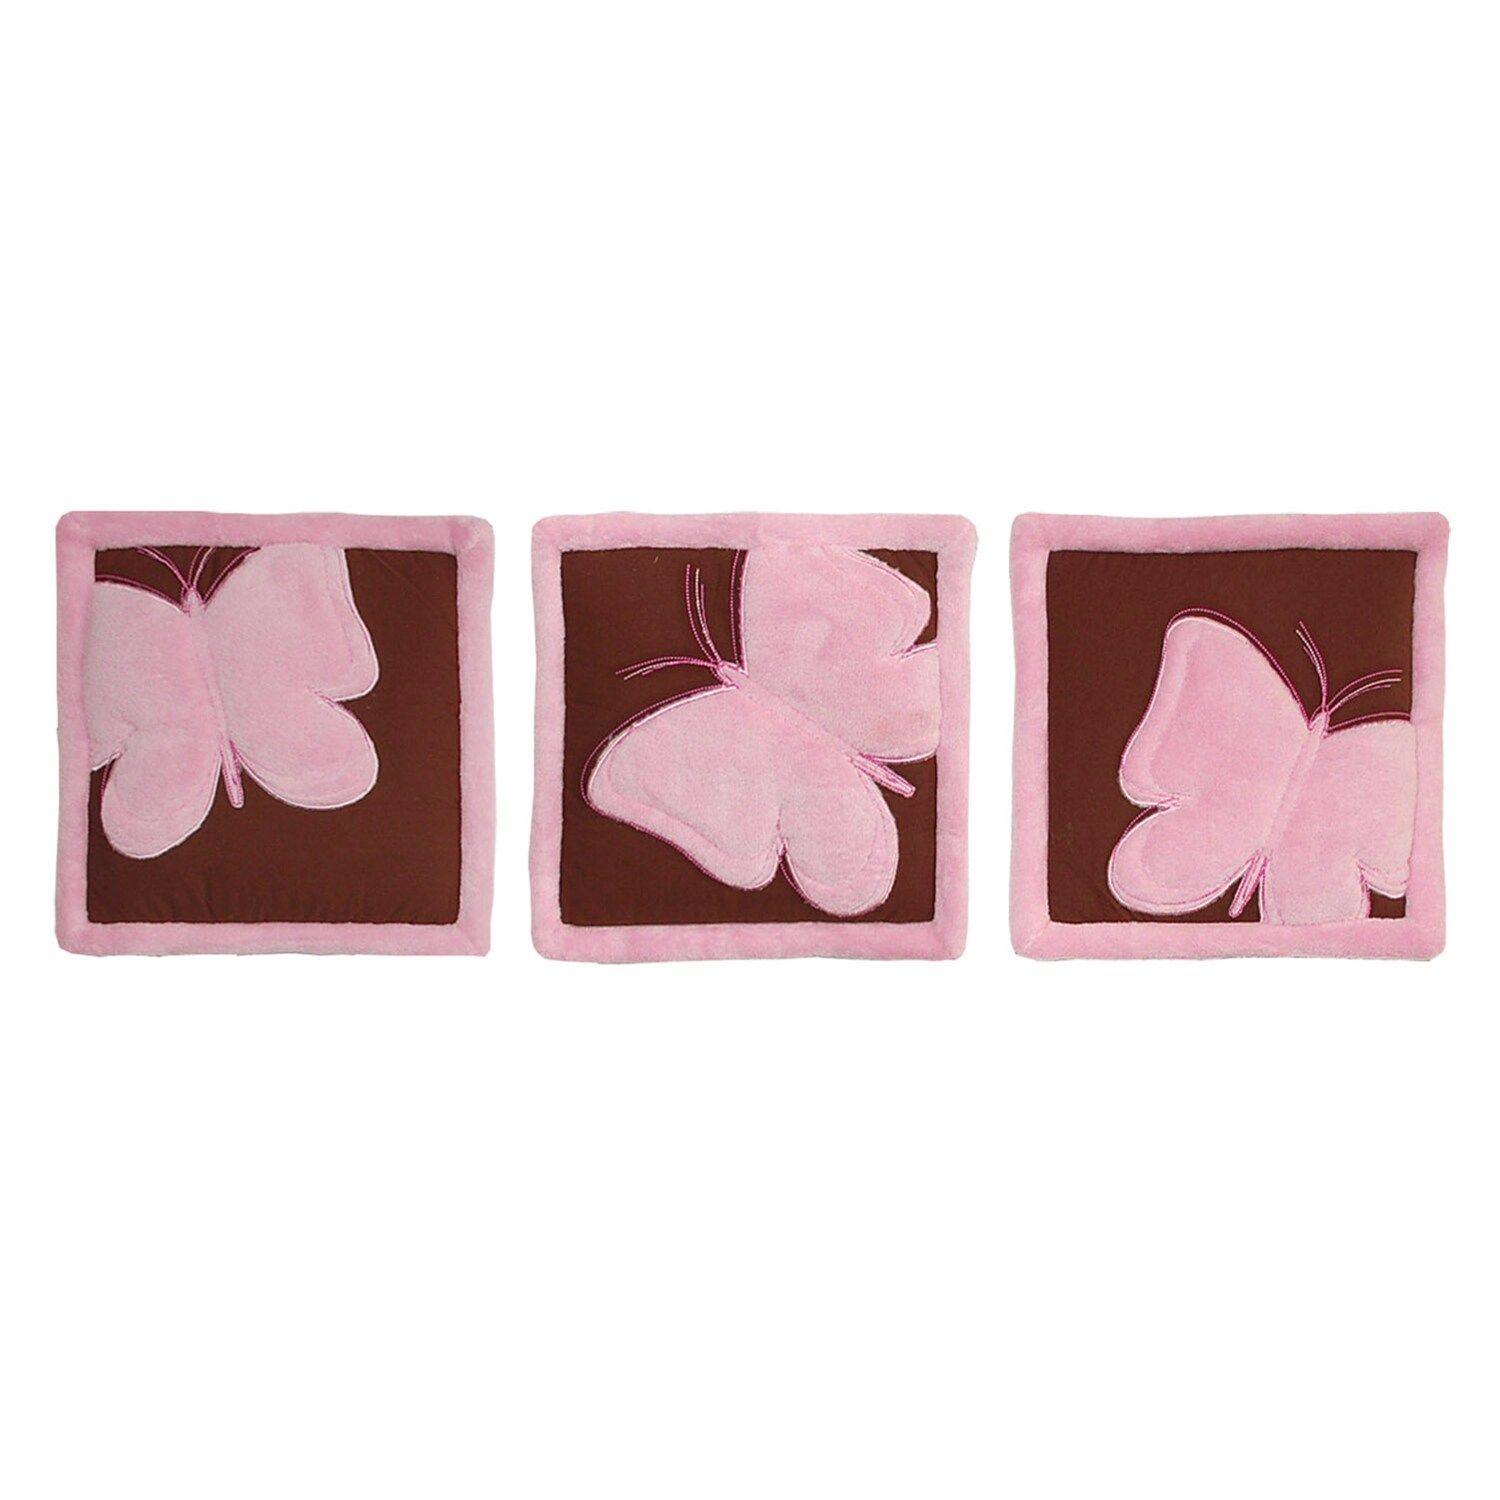 Tadpoles Butterfly Wall Hangings Set Affiliate Butterfly Tadpoles Wall Set In 2020 Butterfly Baby Quilts Butterfly Wall Wall Hanging